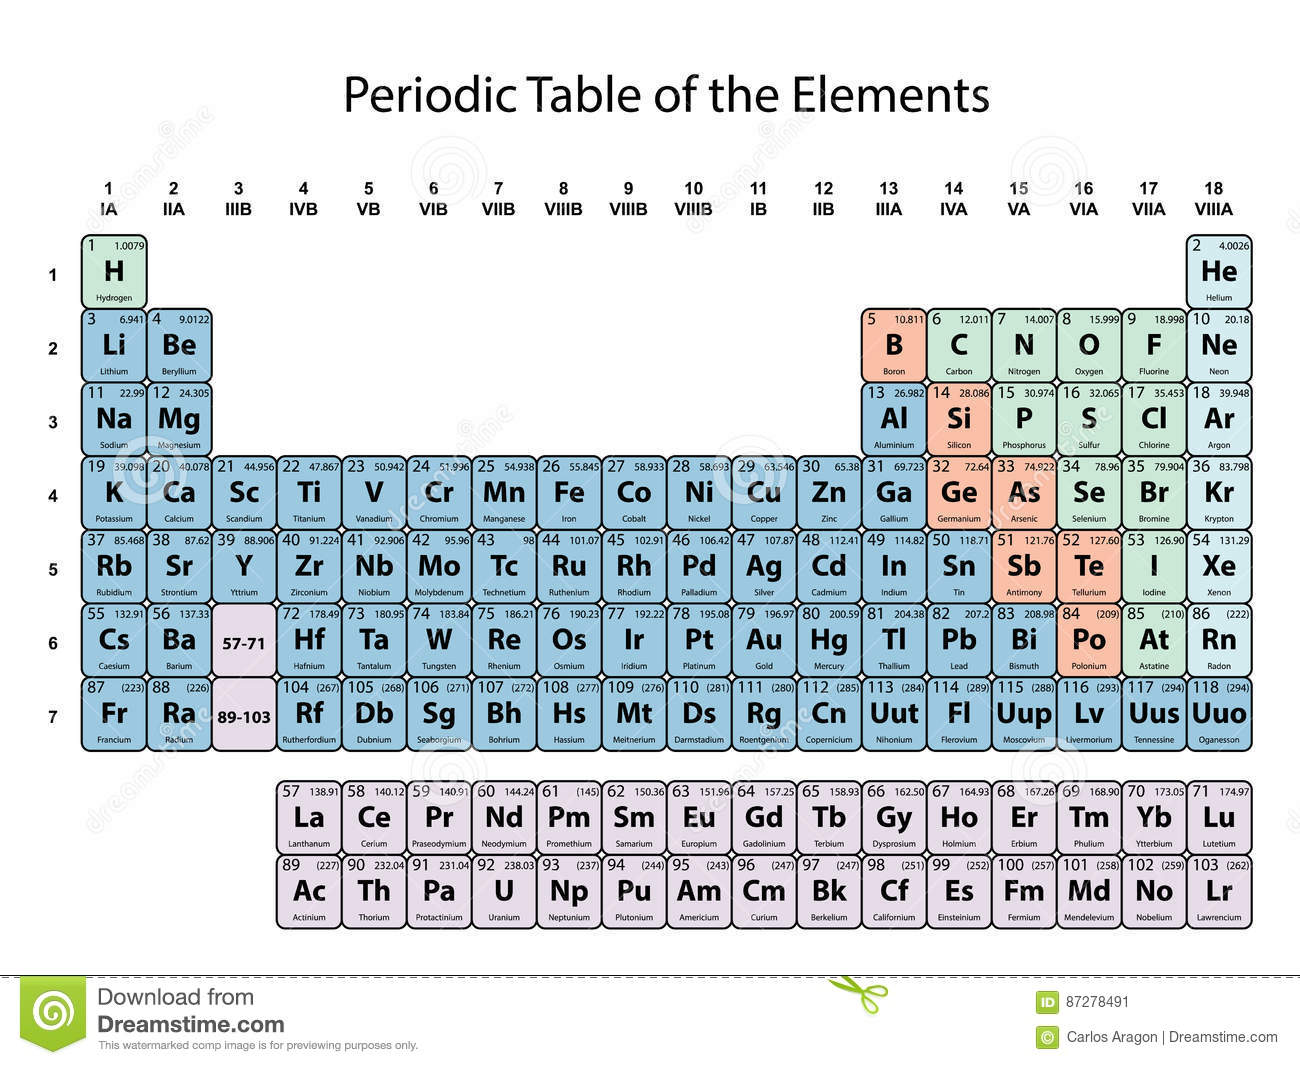 Periodic table of the elements with atomic number symbol and royalty free illustration download periodic table gamestrikefo Image collections